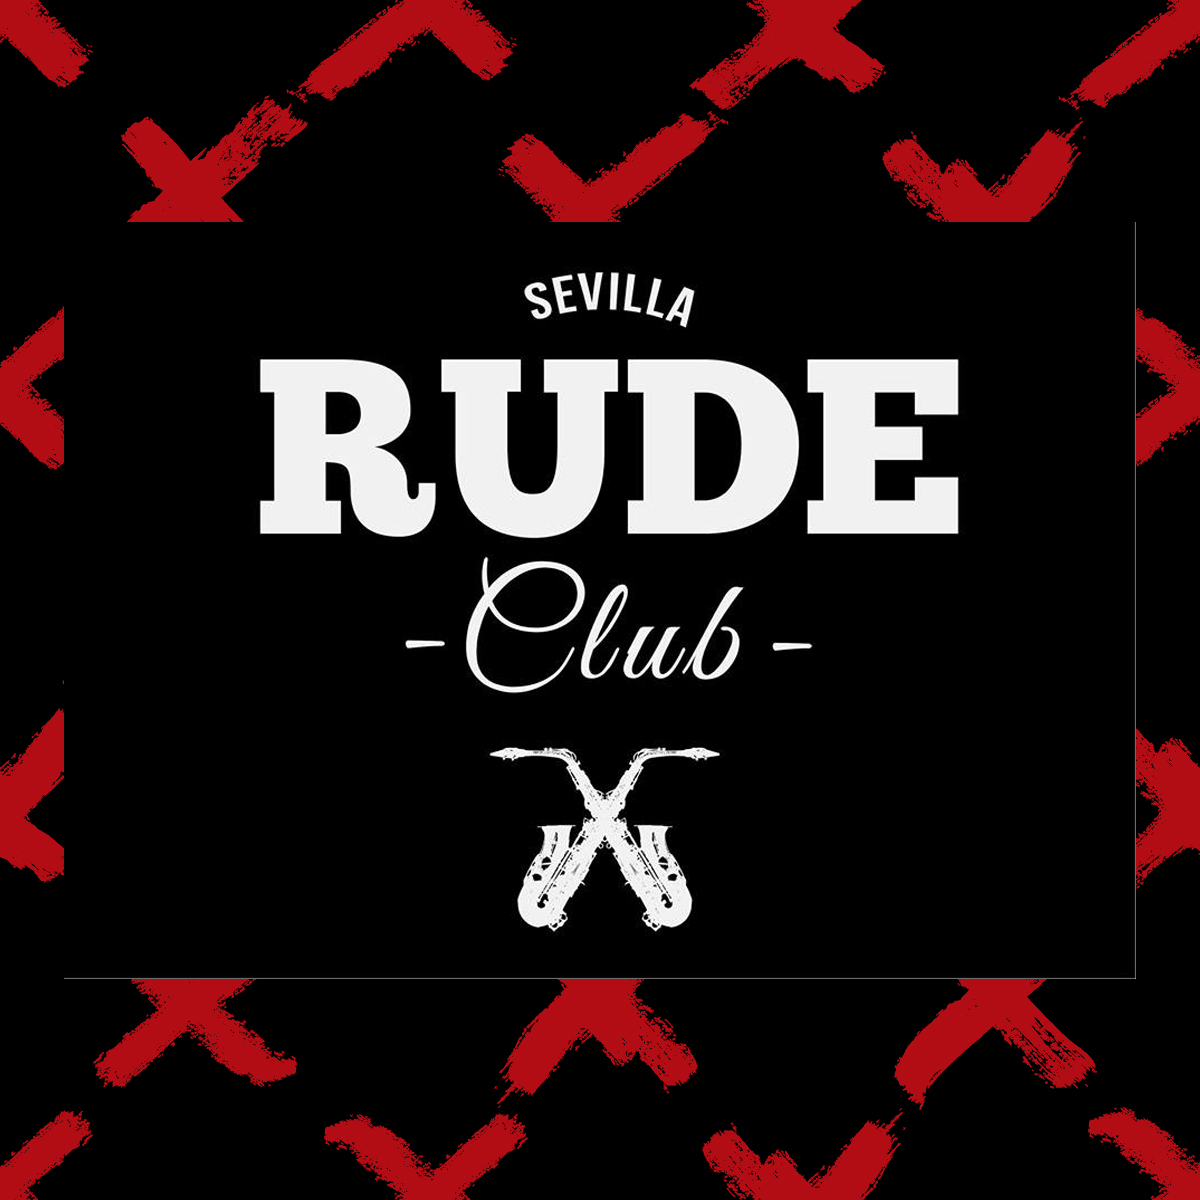 sevilla rude club logo instagram